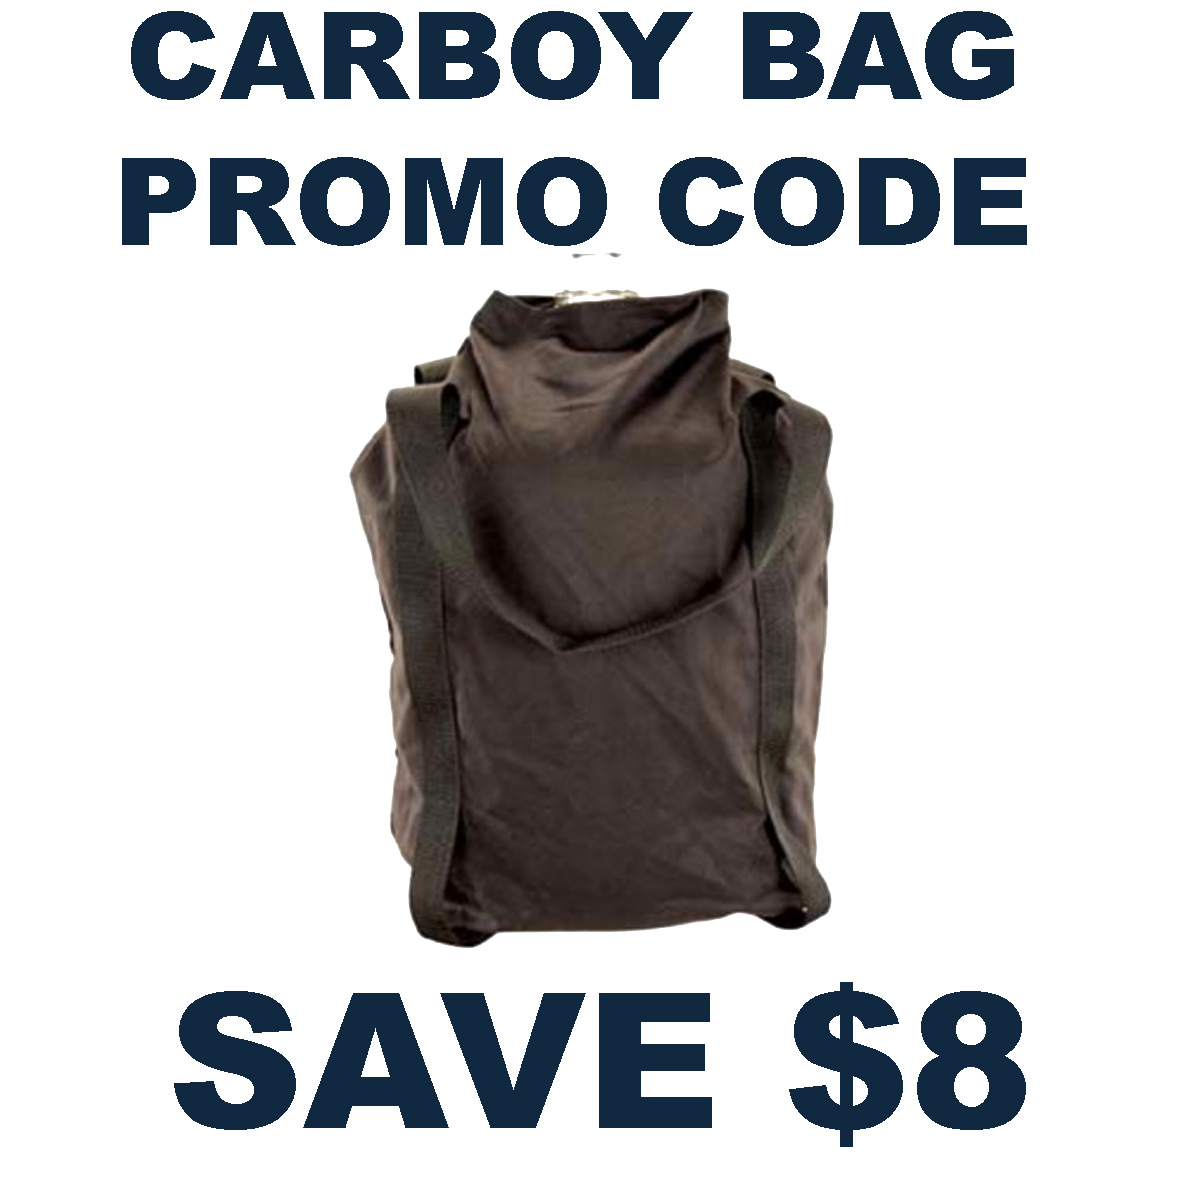 Home Wine Making Coupon Codes for Save $7 On A Carboy Bag With This Coupon Code